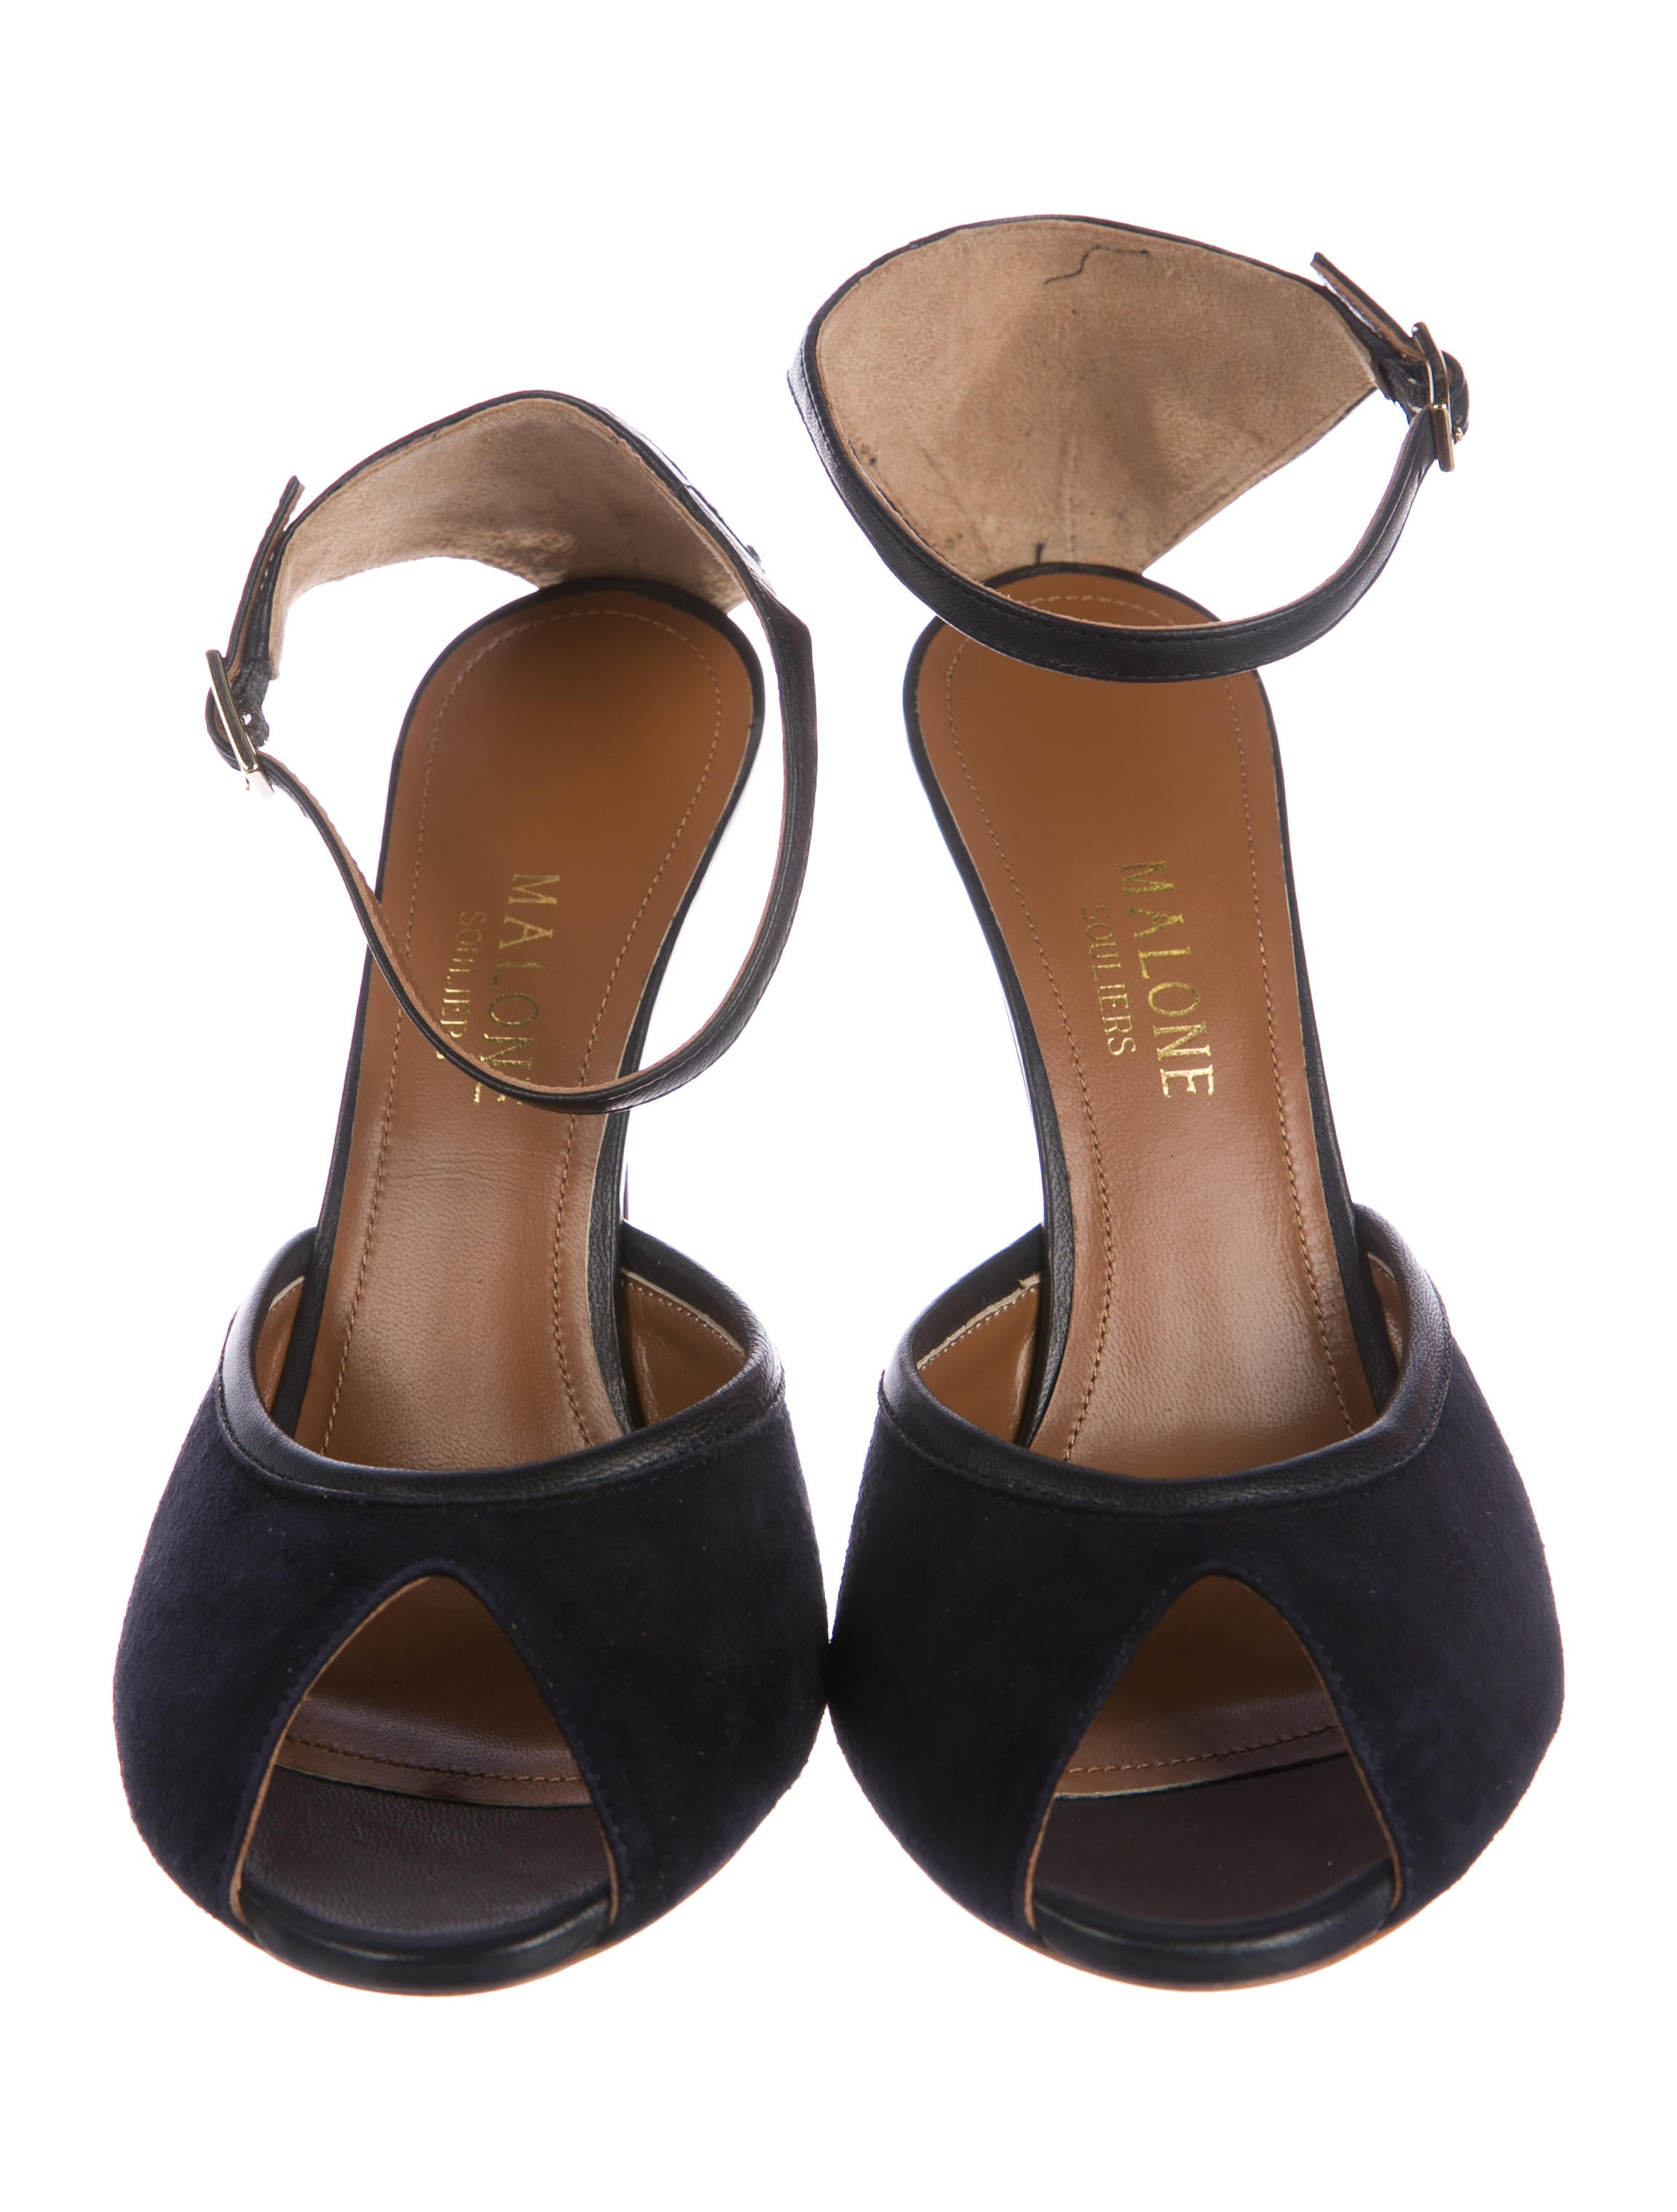 clearance best 2014 unisex cheap price Malone Souliers Lolo Karung-Trimmed Pumps w/ Tags clearance comfortable clearance cost dM9HCvbpY